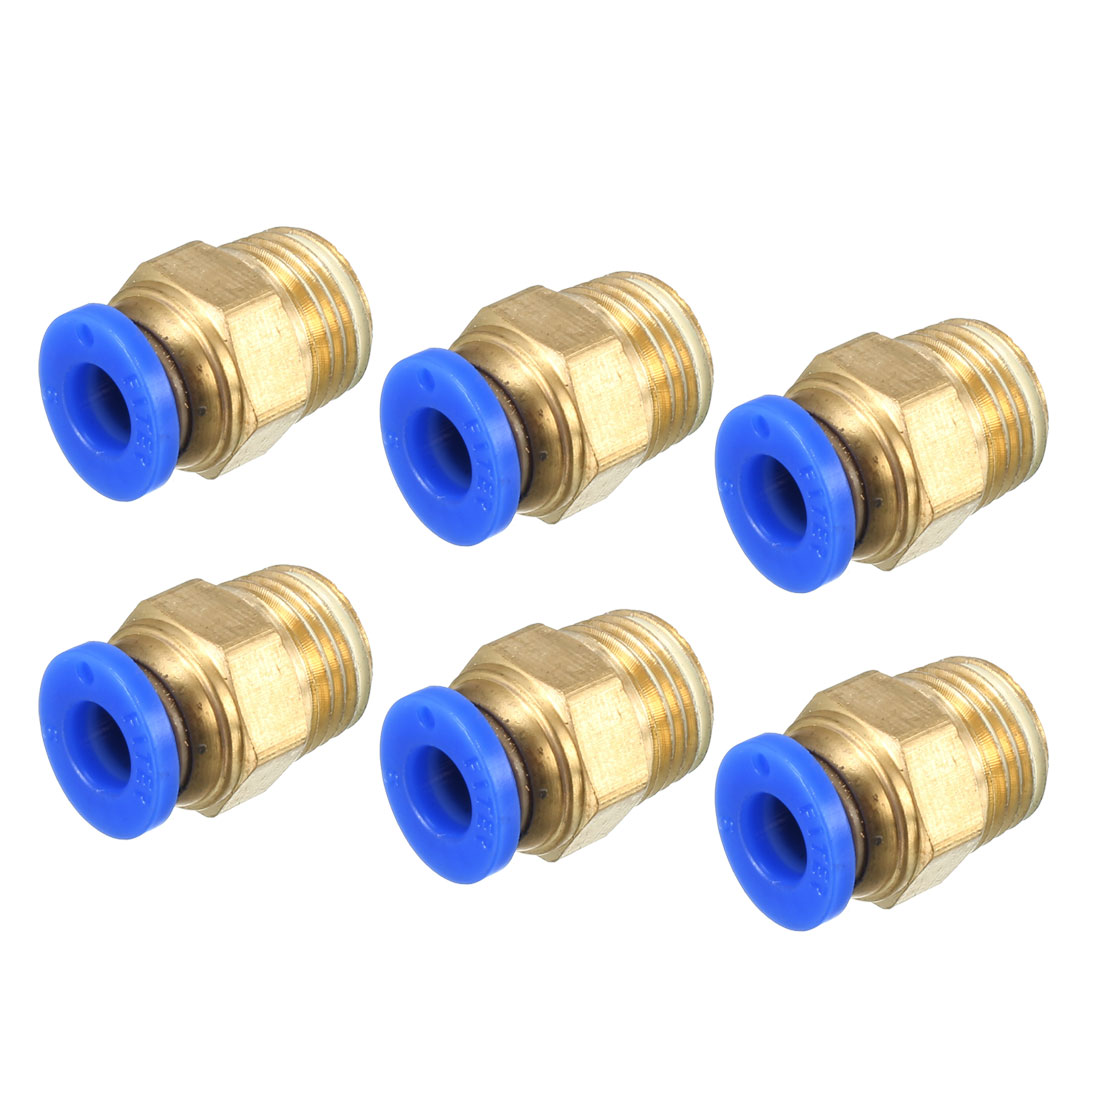 6 Pcs 1/4PT Male Thread to 6mm Hole Air Pneumatic Quick Release Coupler Fitting Connector Joint